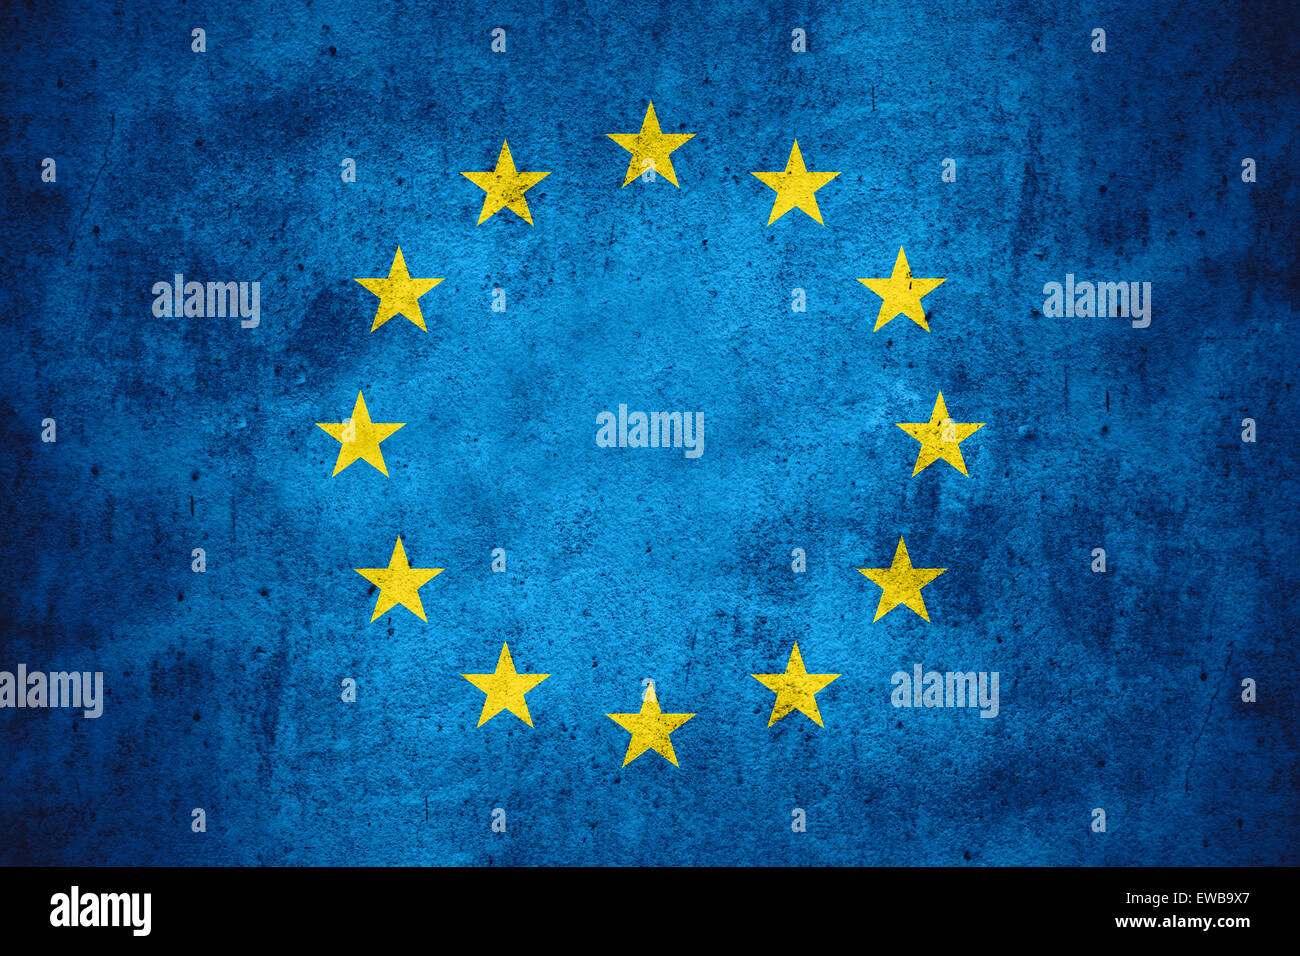 flag of European Union or banner on rough pattern texture background, Europe - Stock Image